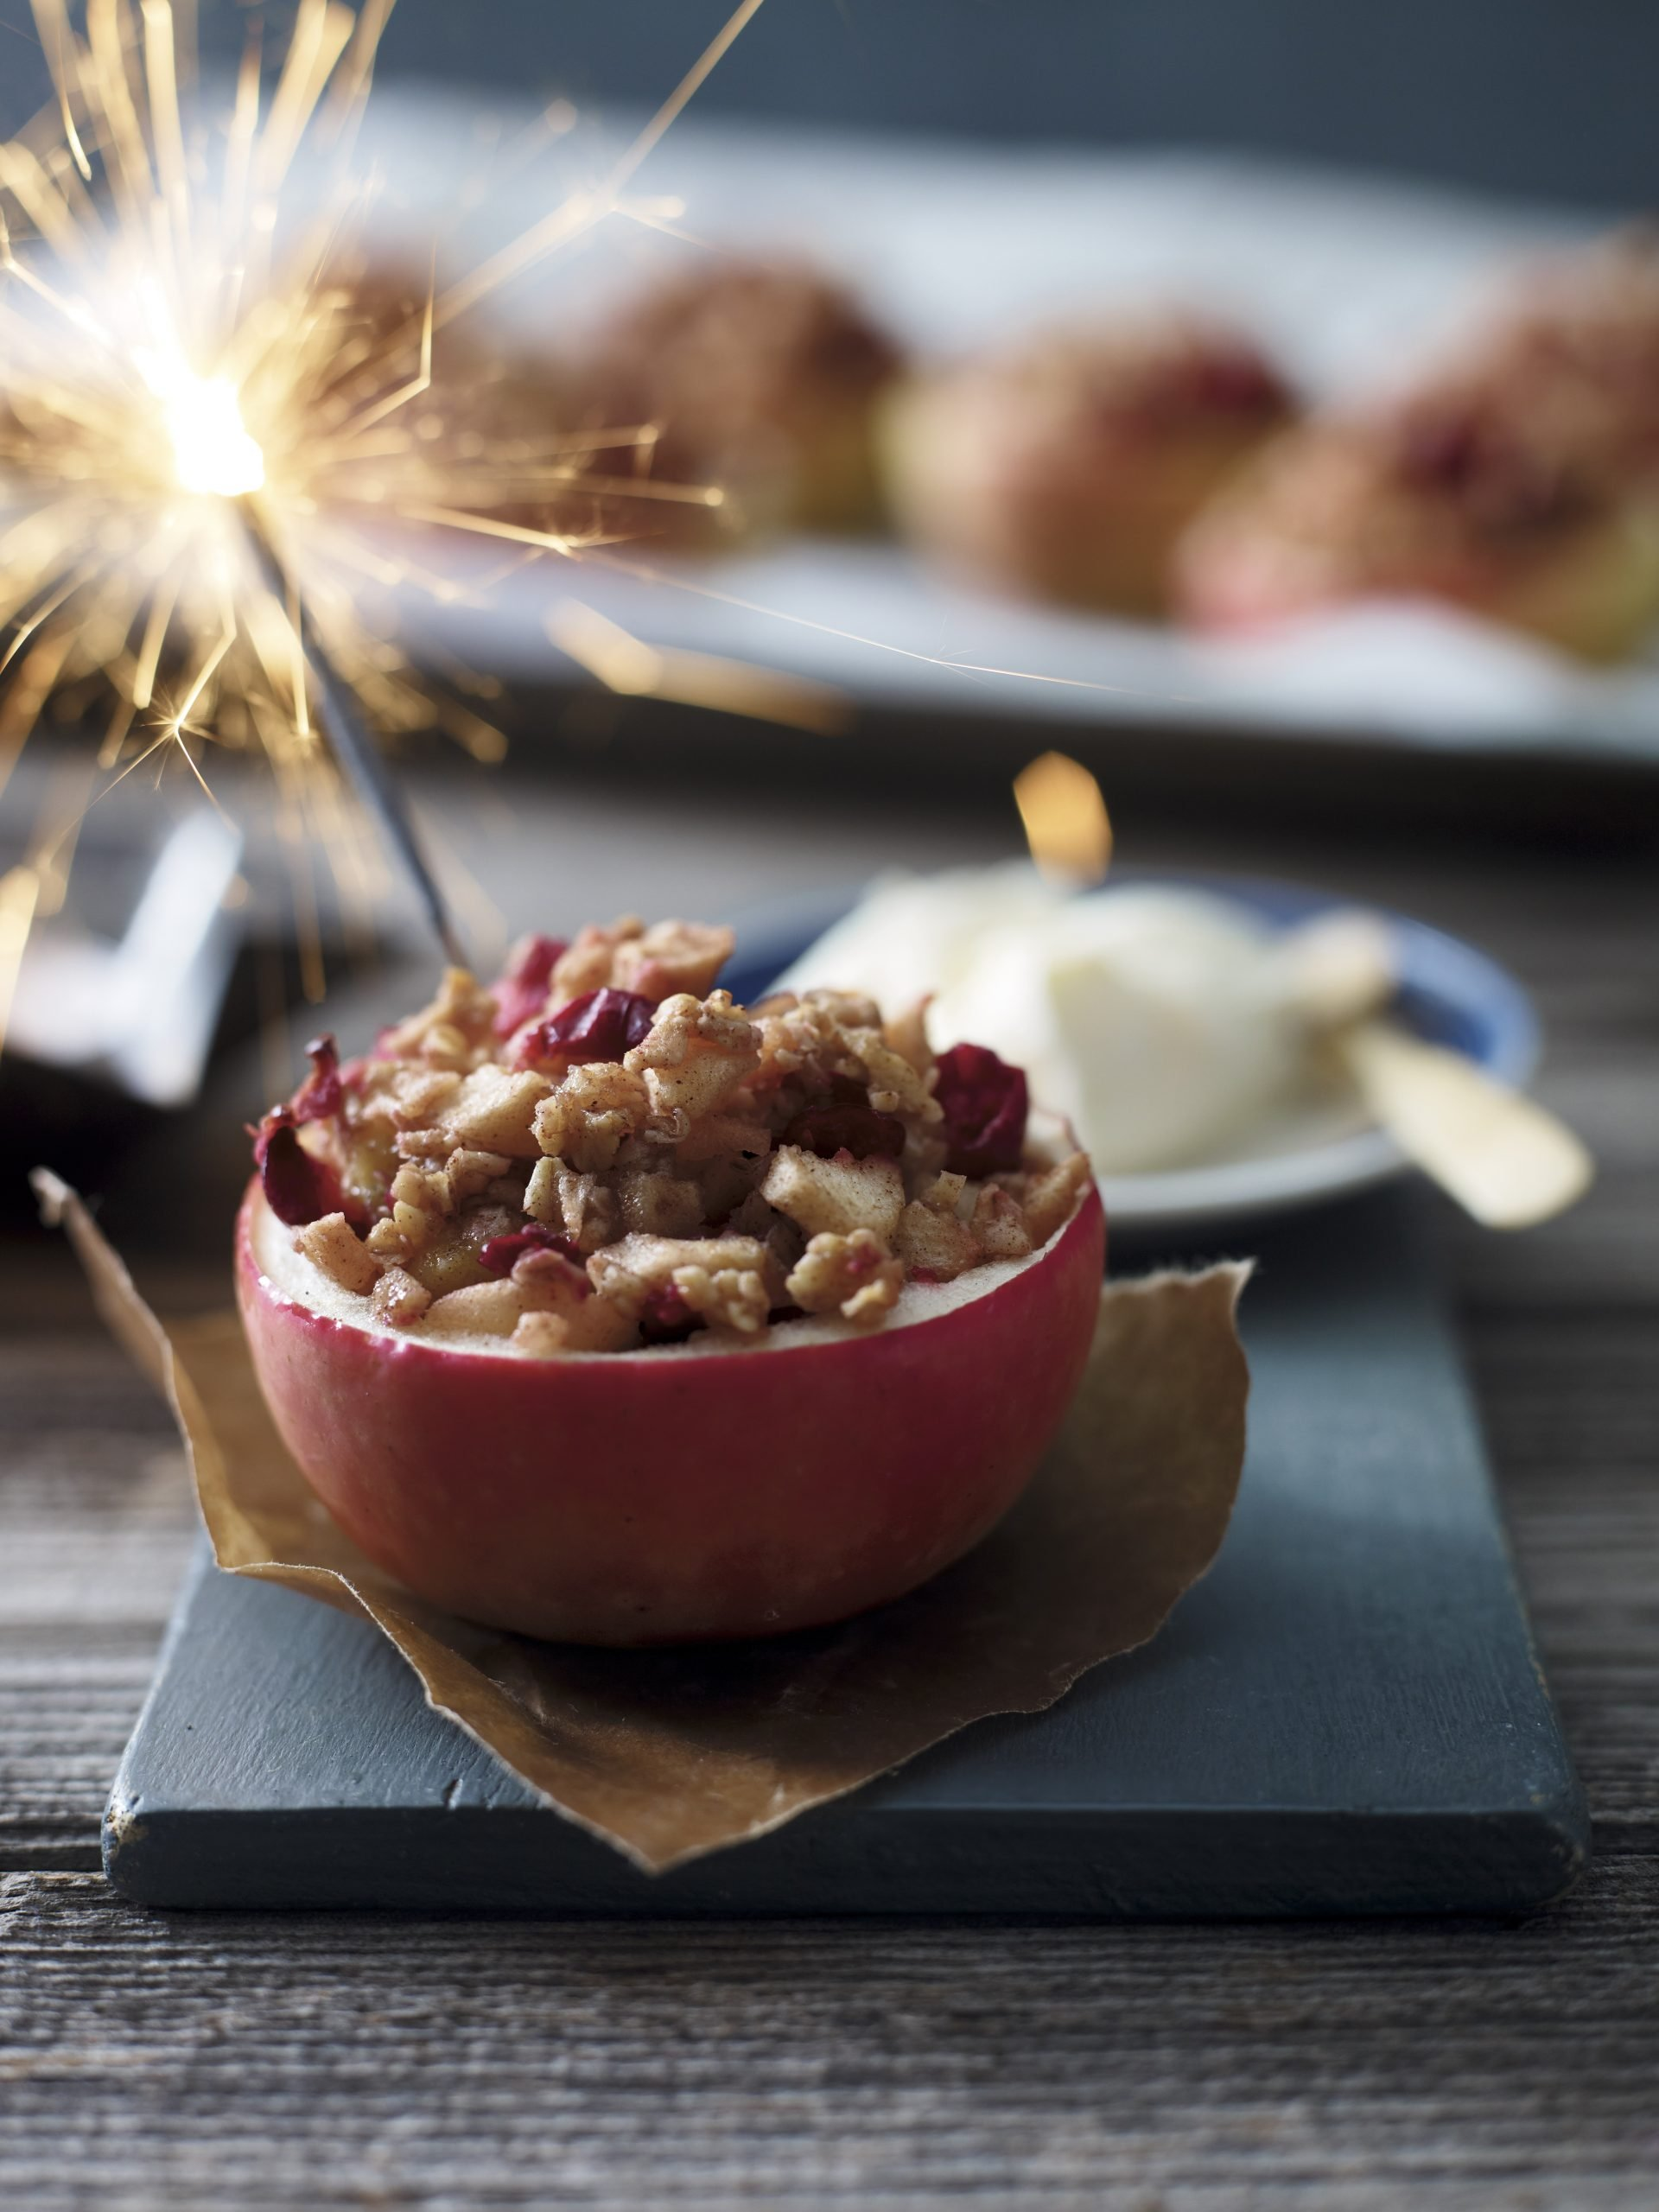 Recipe: Baked Apples with Cranberry and Marzipan Crumble